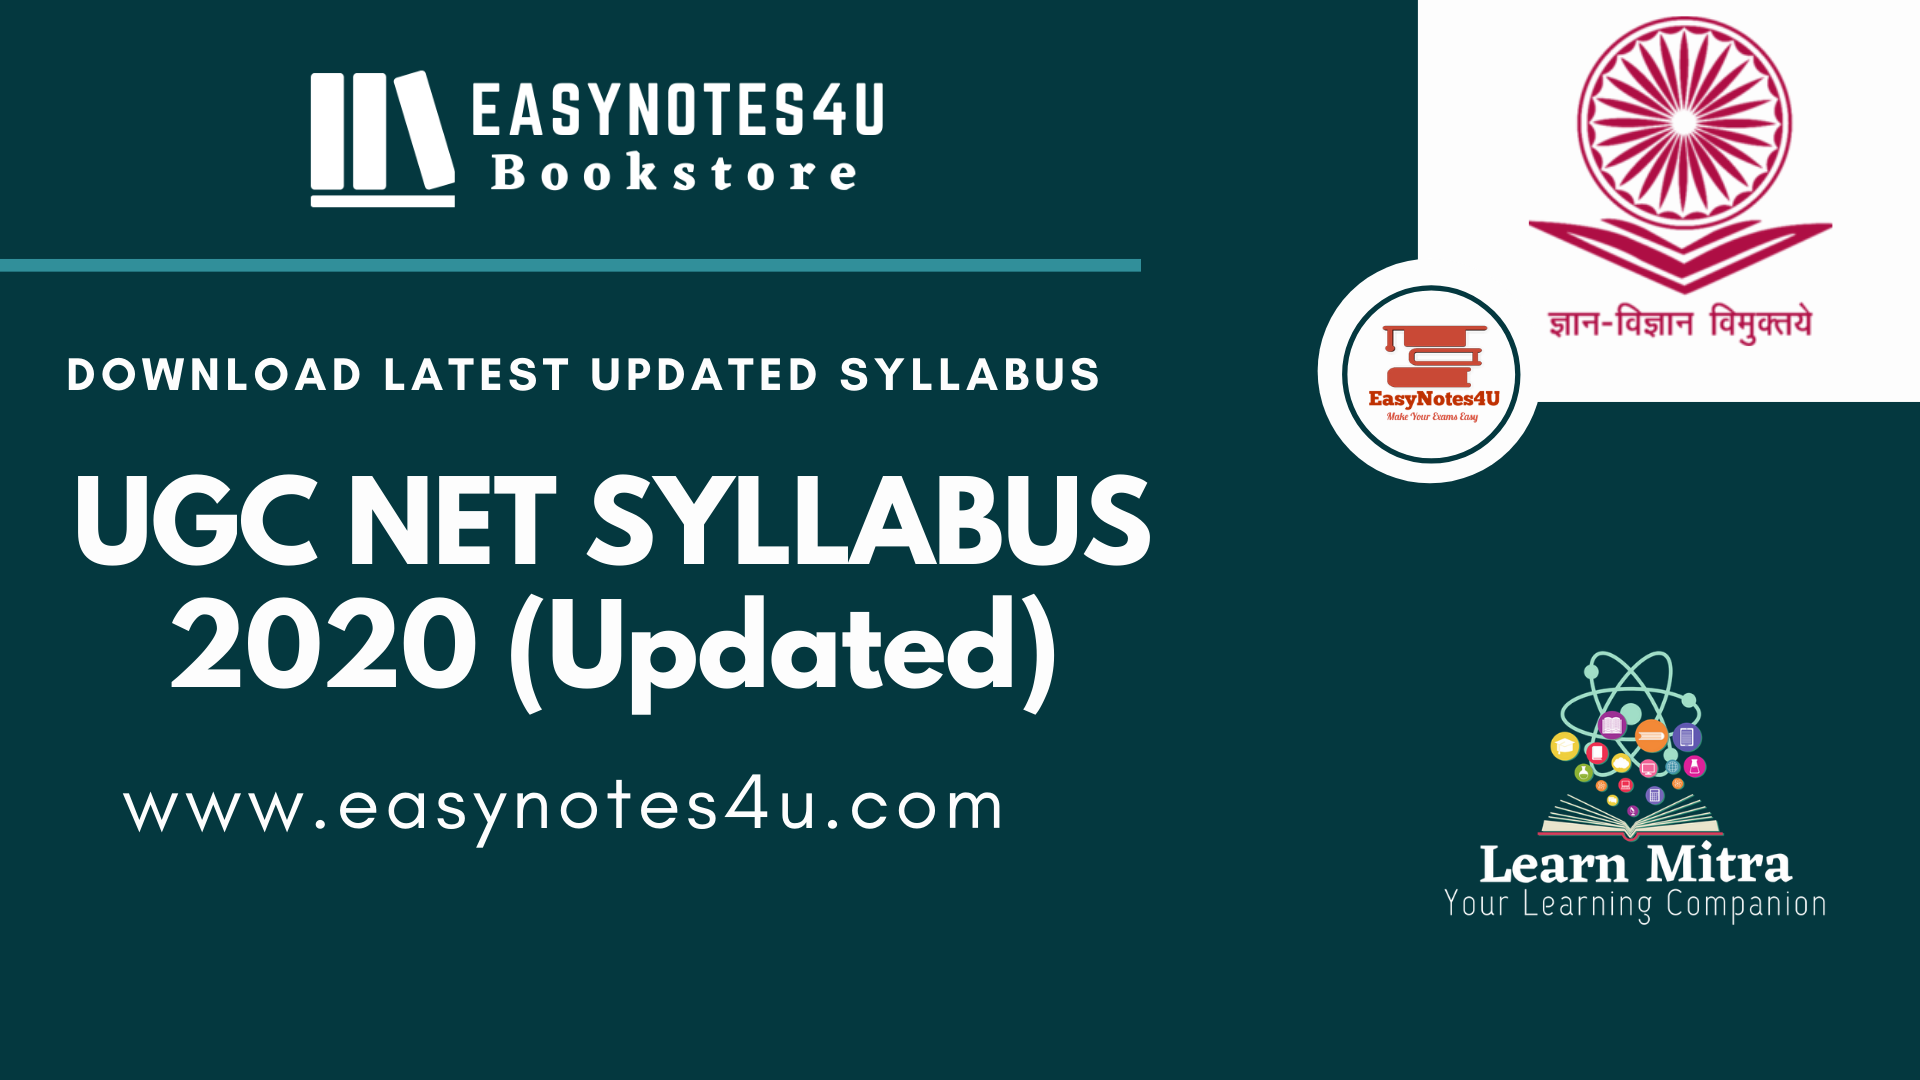 UGC NET Syllabus 2020 Updated & Latest – Download Subject-wise PDFs of Paper 1 & 2